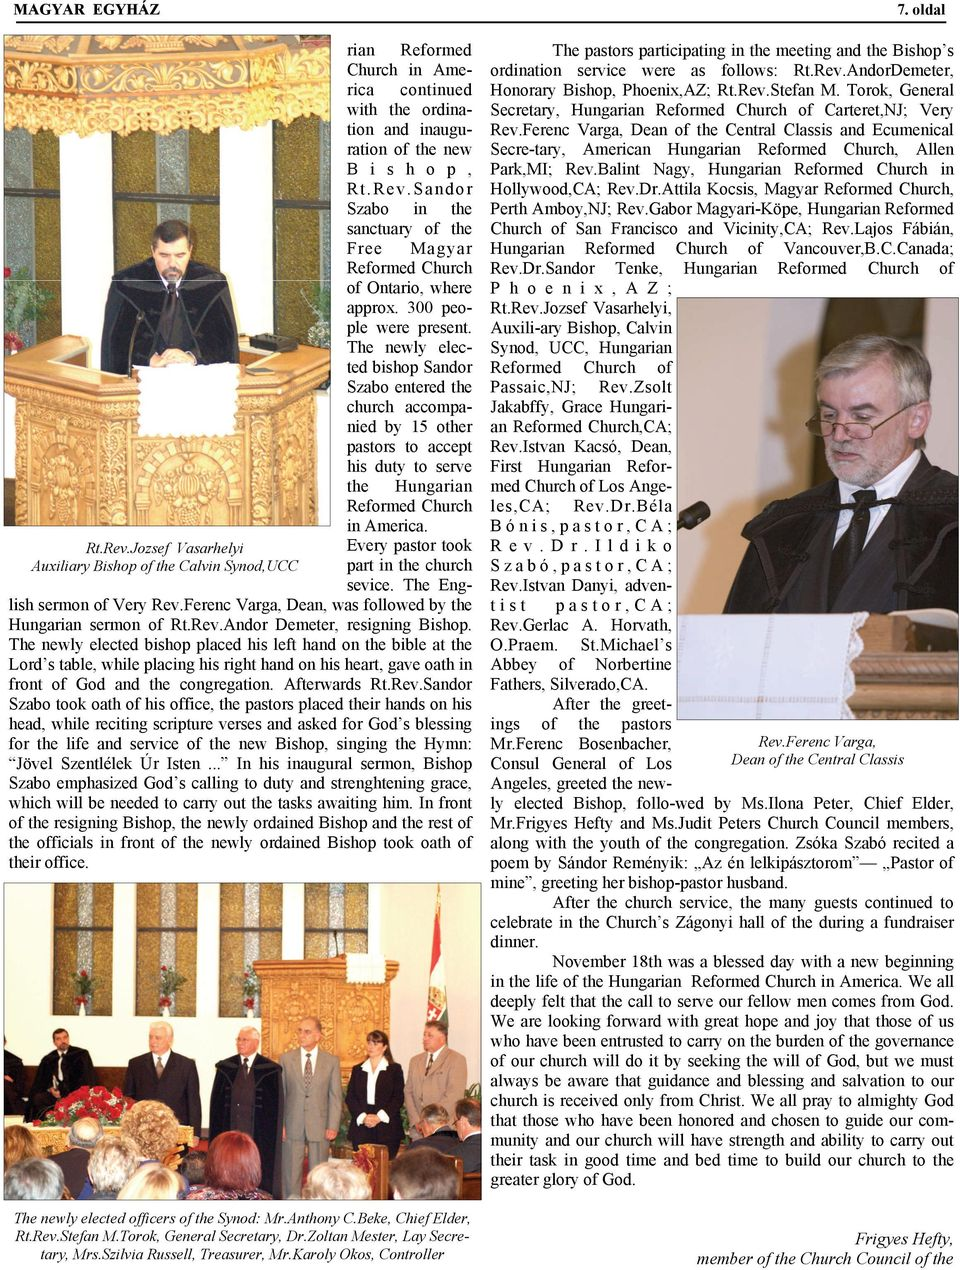 Every pastor took part in the church sevice. The English sermon of Very Rev.Ferenc Varga, Dean, was followed by the Hungarian sermon of Rt.Rev.Andor Demeter, resigning Bishop.